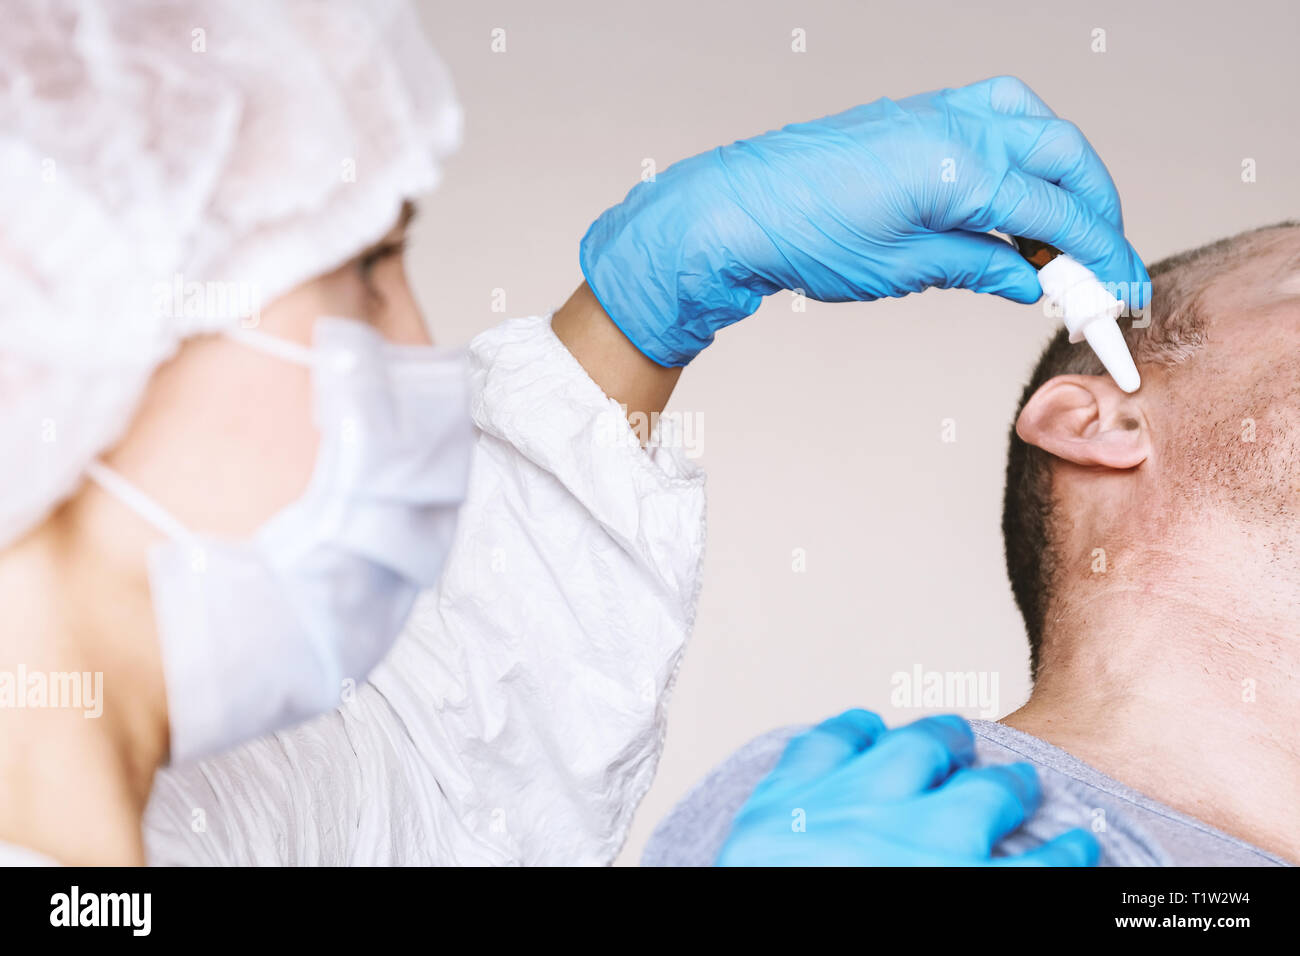 Doctor Otolaryngologist treats the otitis media patient. Buries the ear drops in the ear hole. On the face of a protective mask. Protective suit - Stock Image